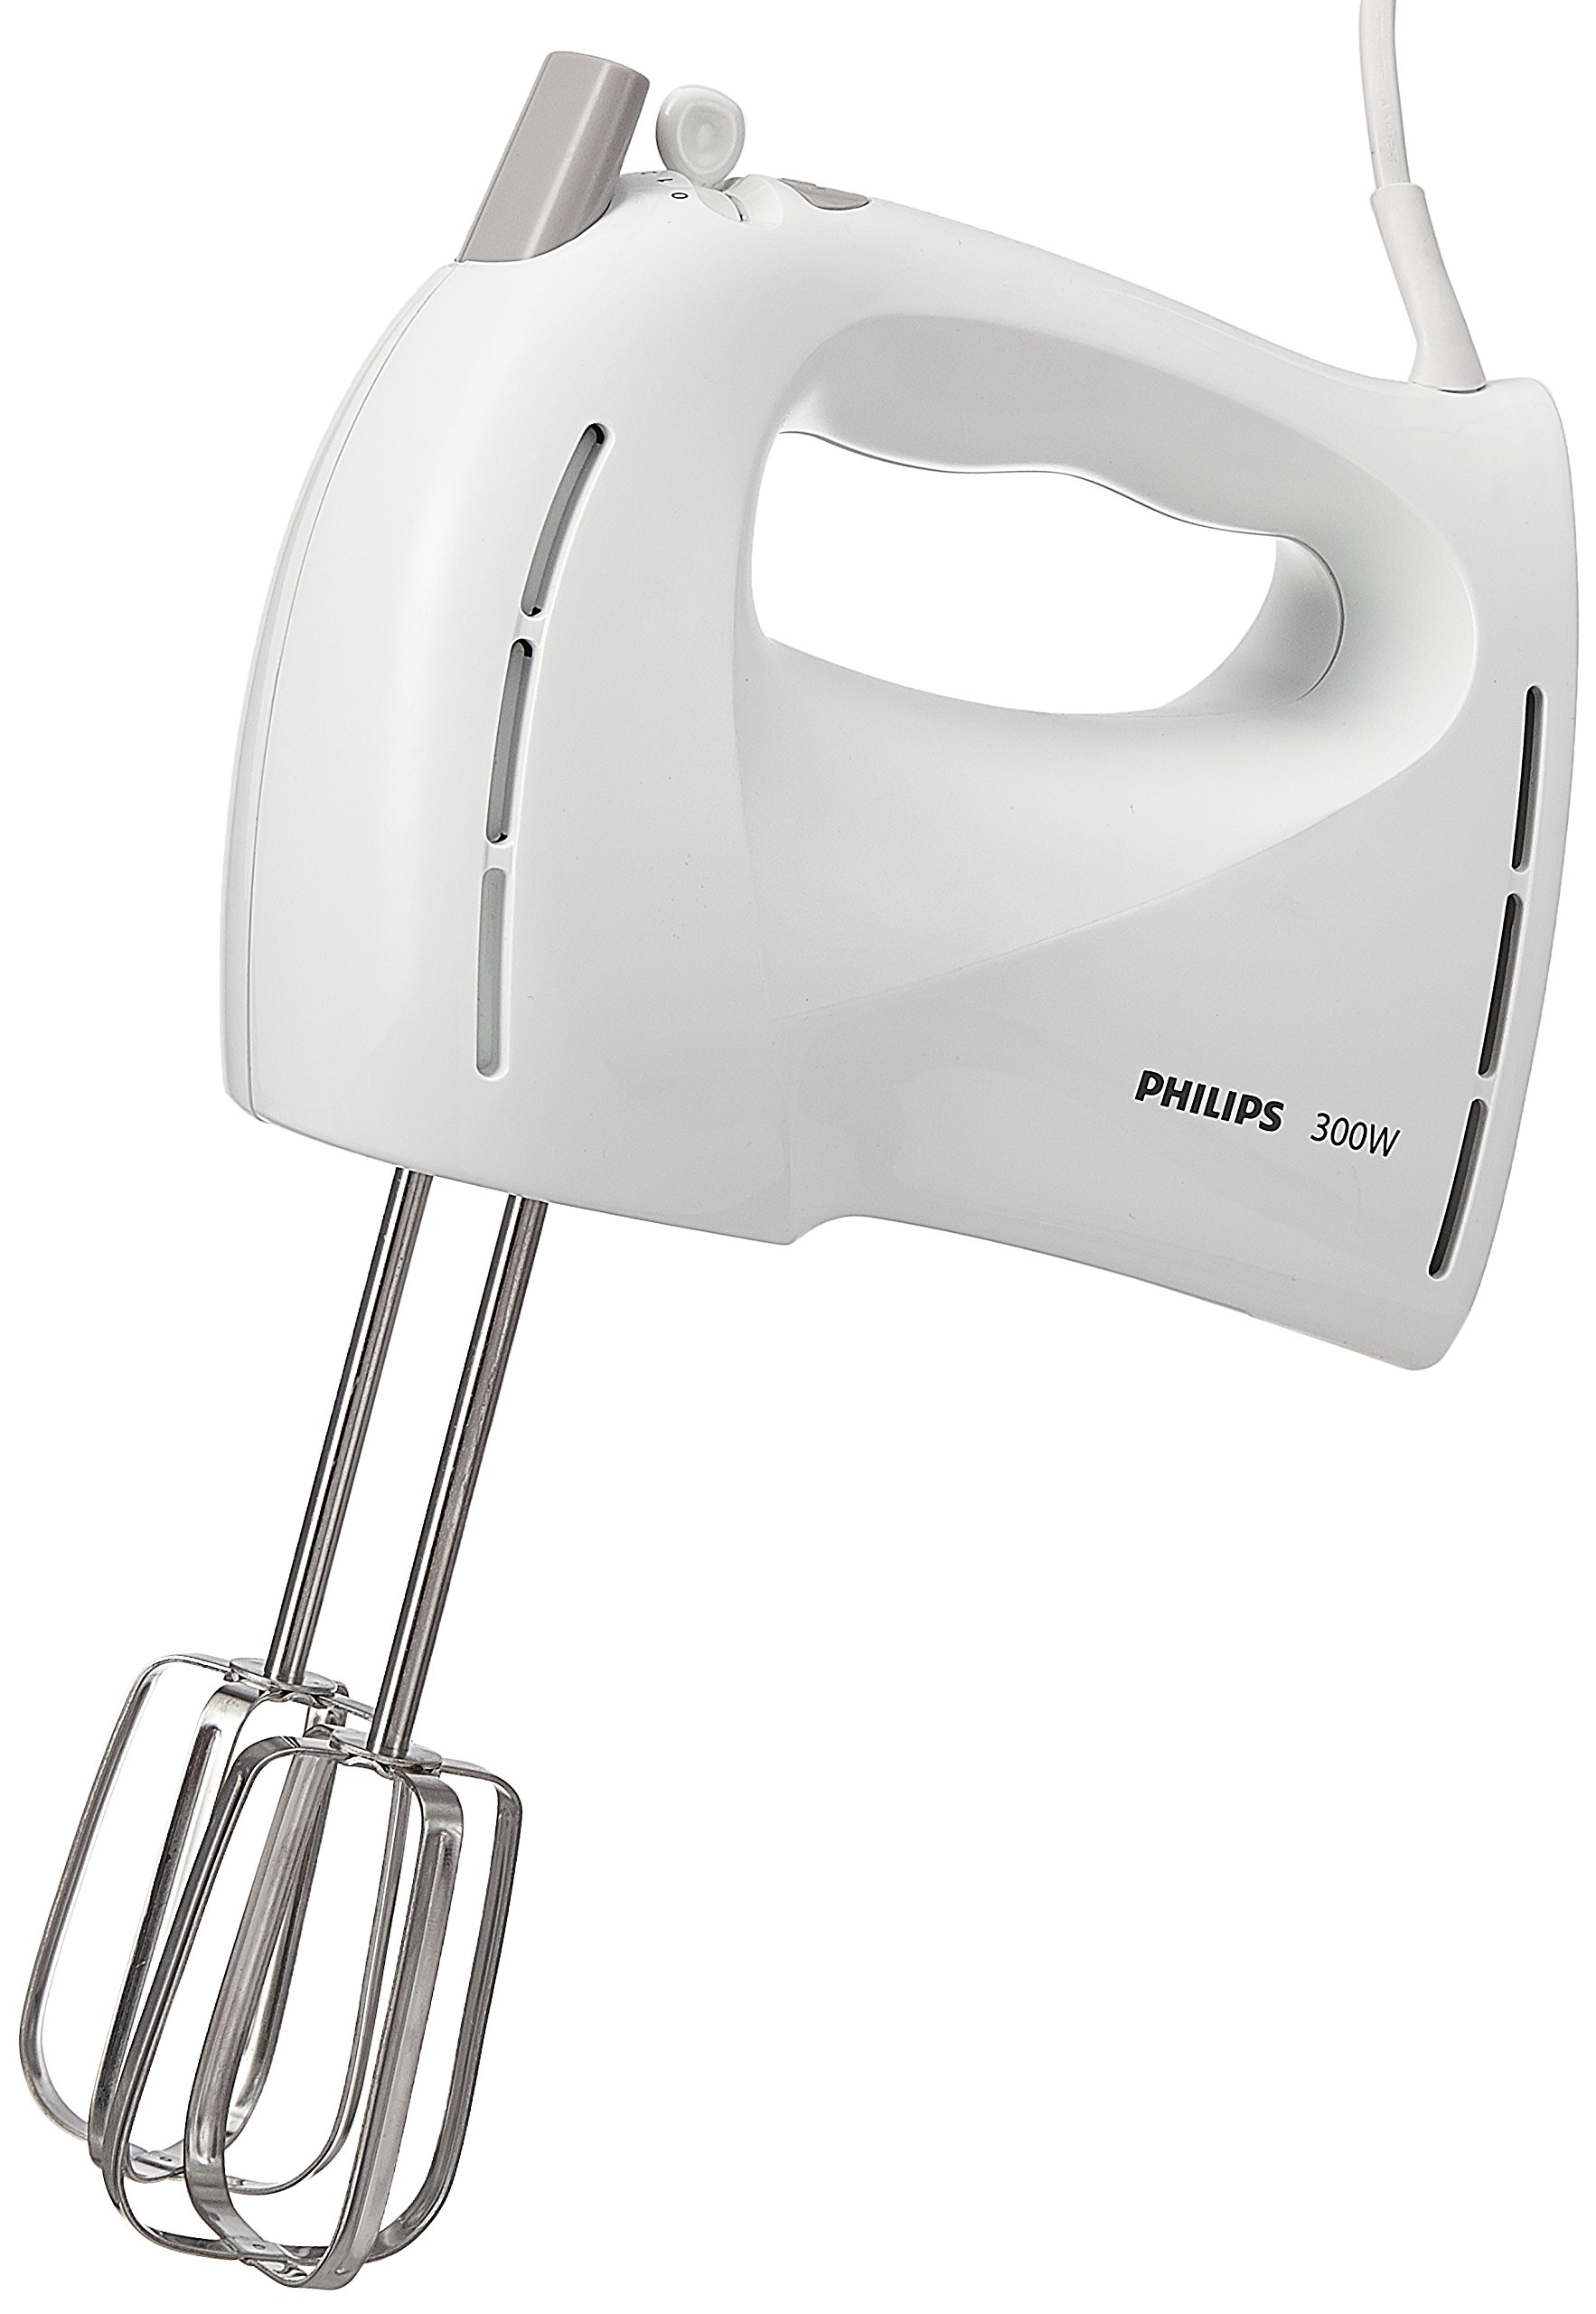 Philips HR1459/00 Batteur 300W 5 Vitesses + turbo product image